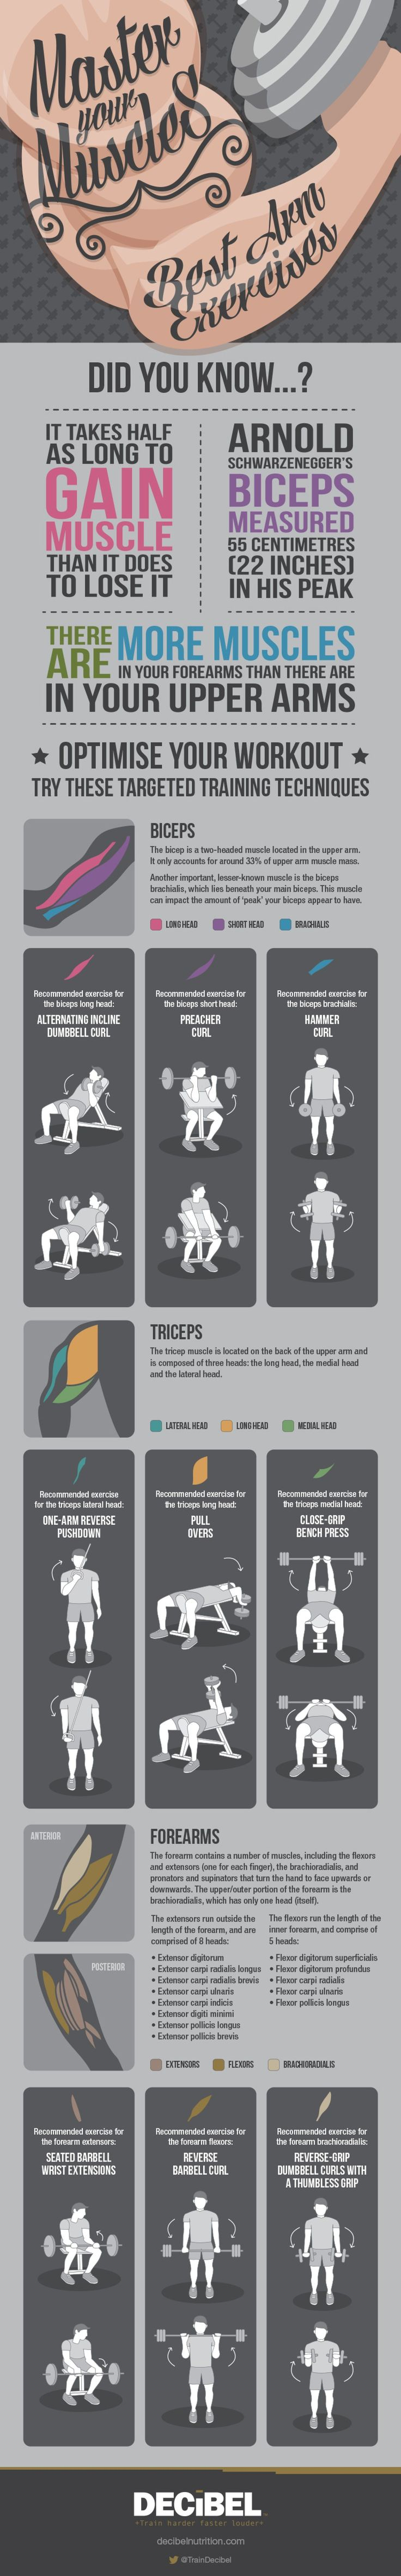 Master Your Muscles: Best Arm Exercises #Infographic #infografía